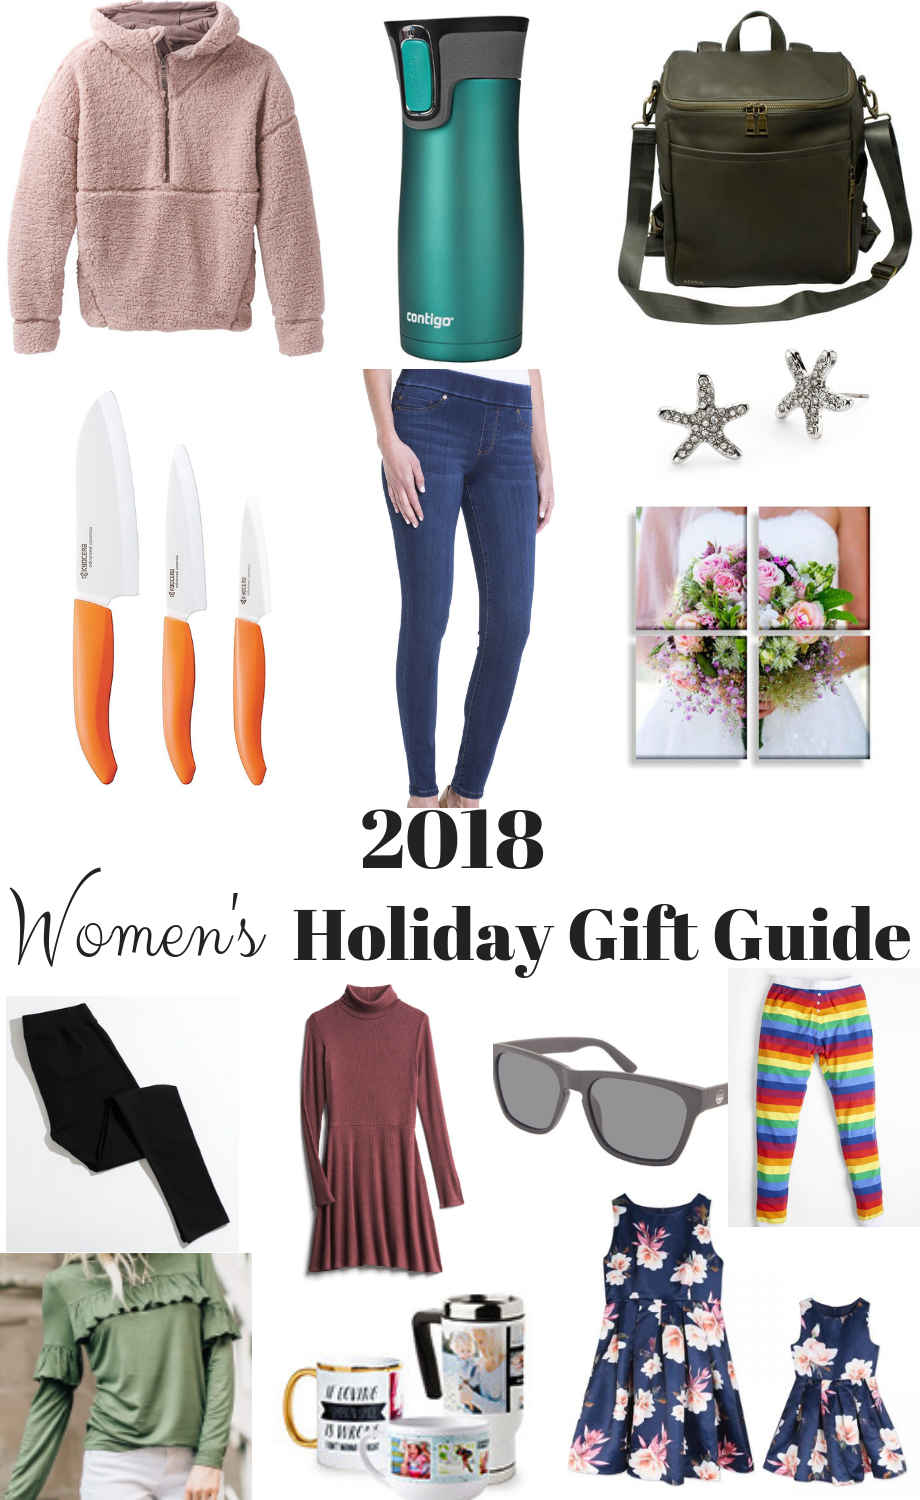 2018 Womens Holiday Gift Guide Mega Giveaway